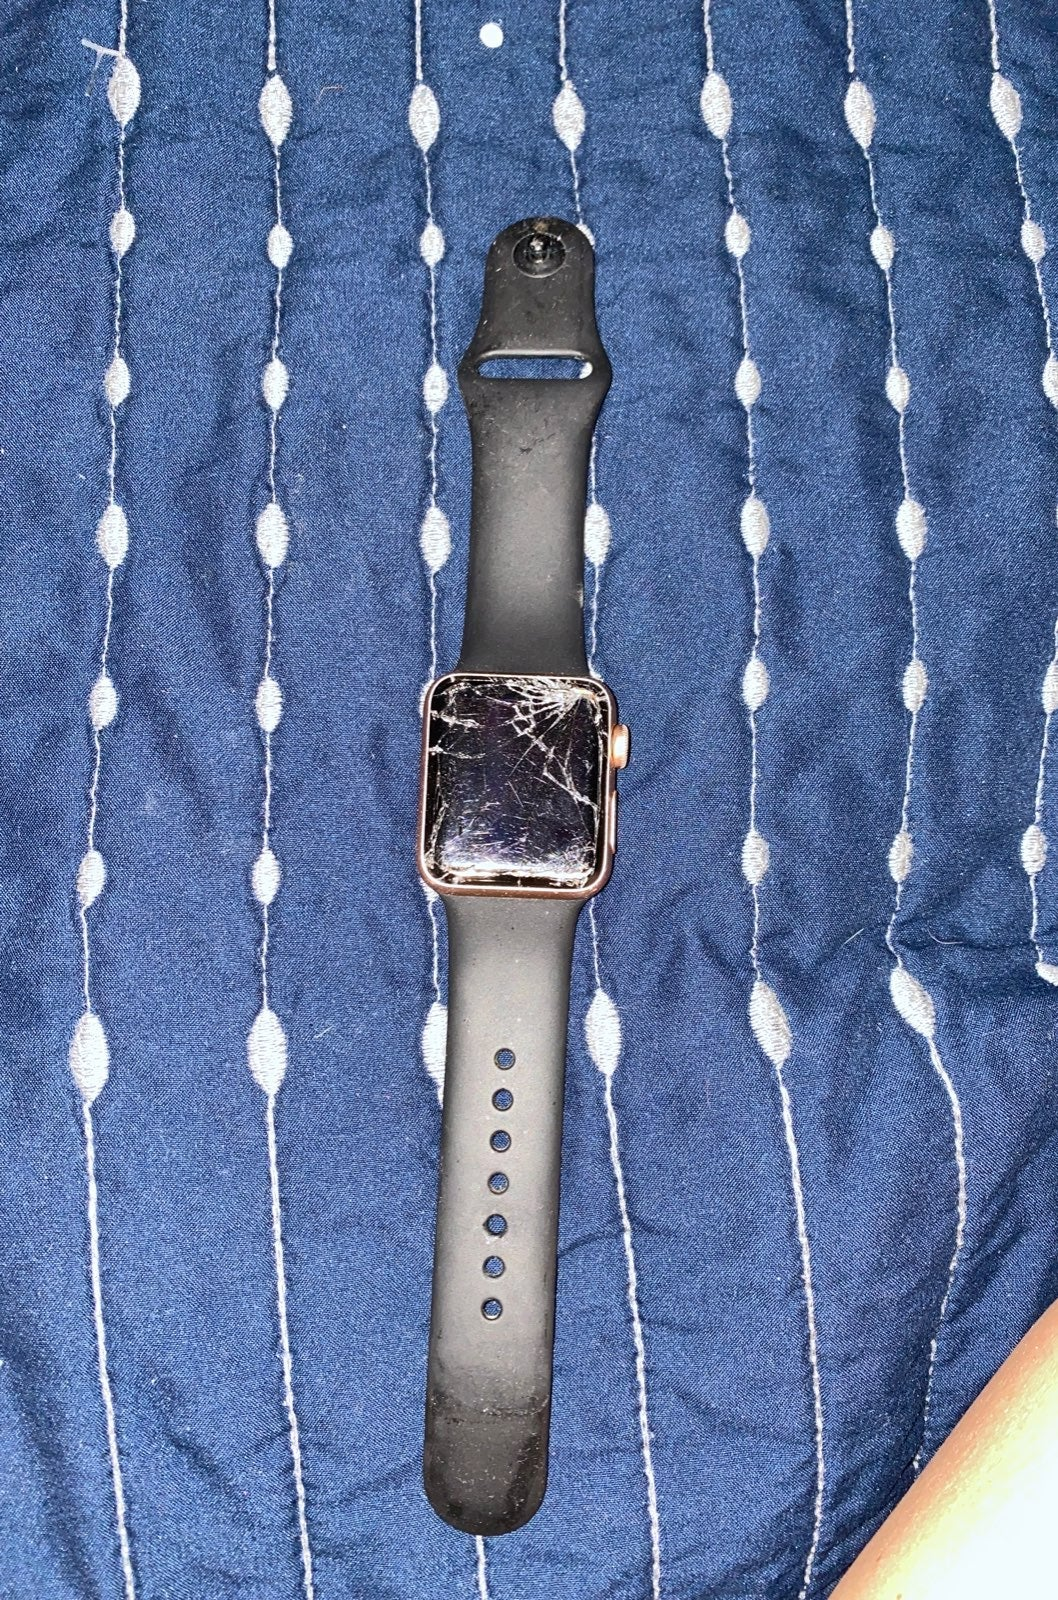 series 3 Apple watch cracked screen